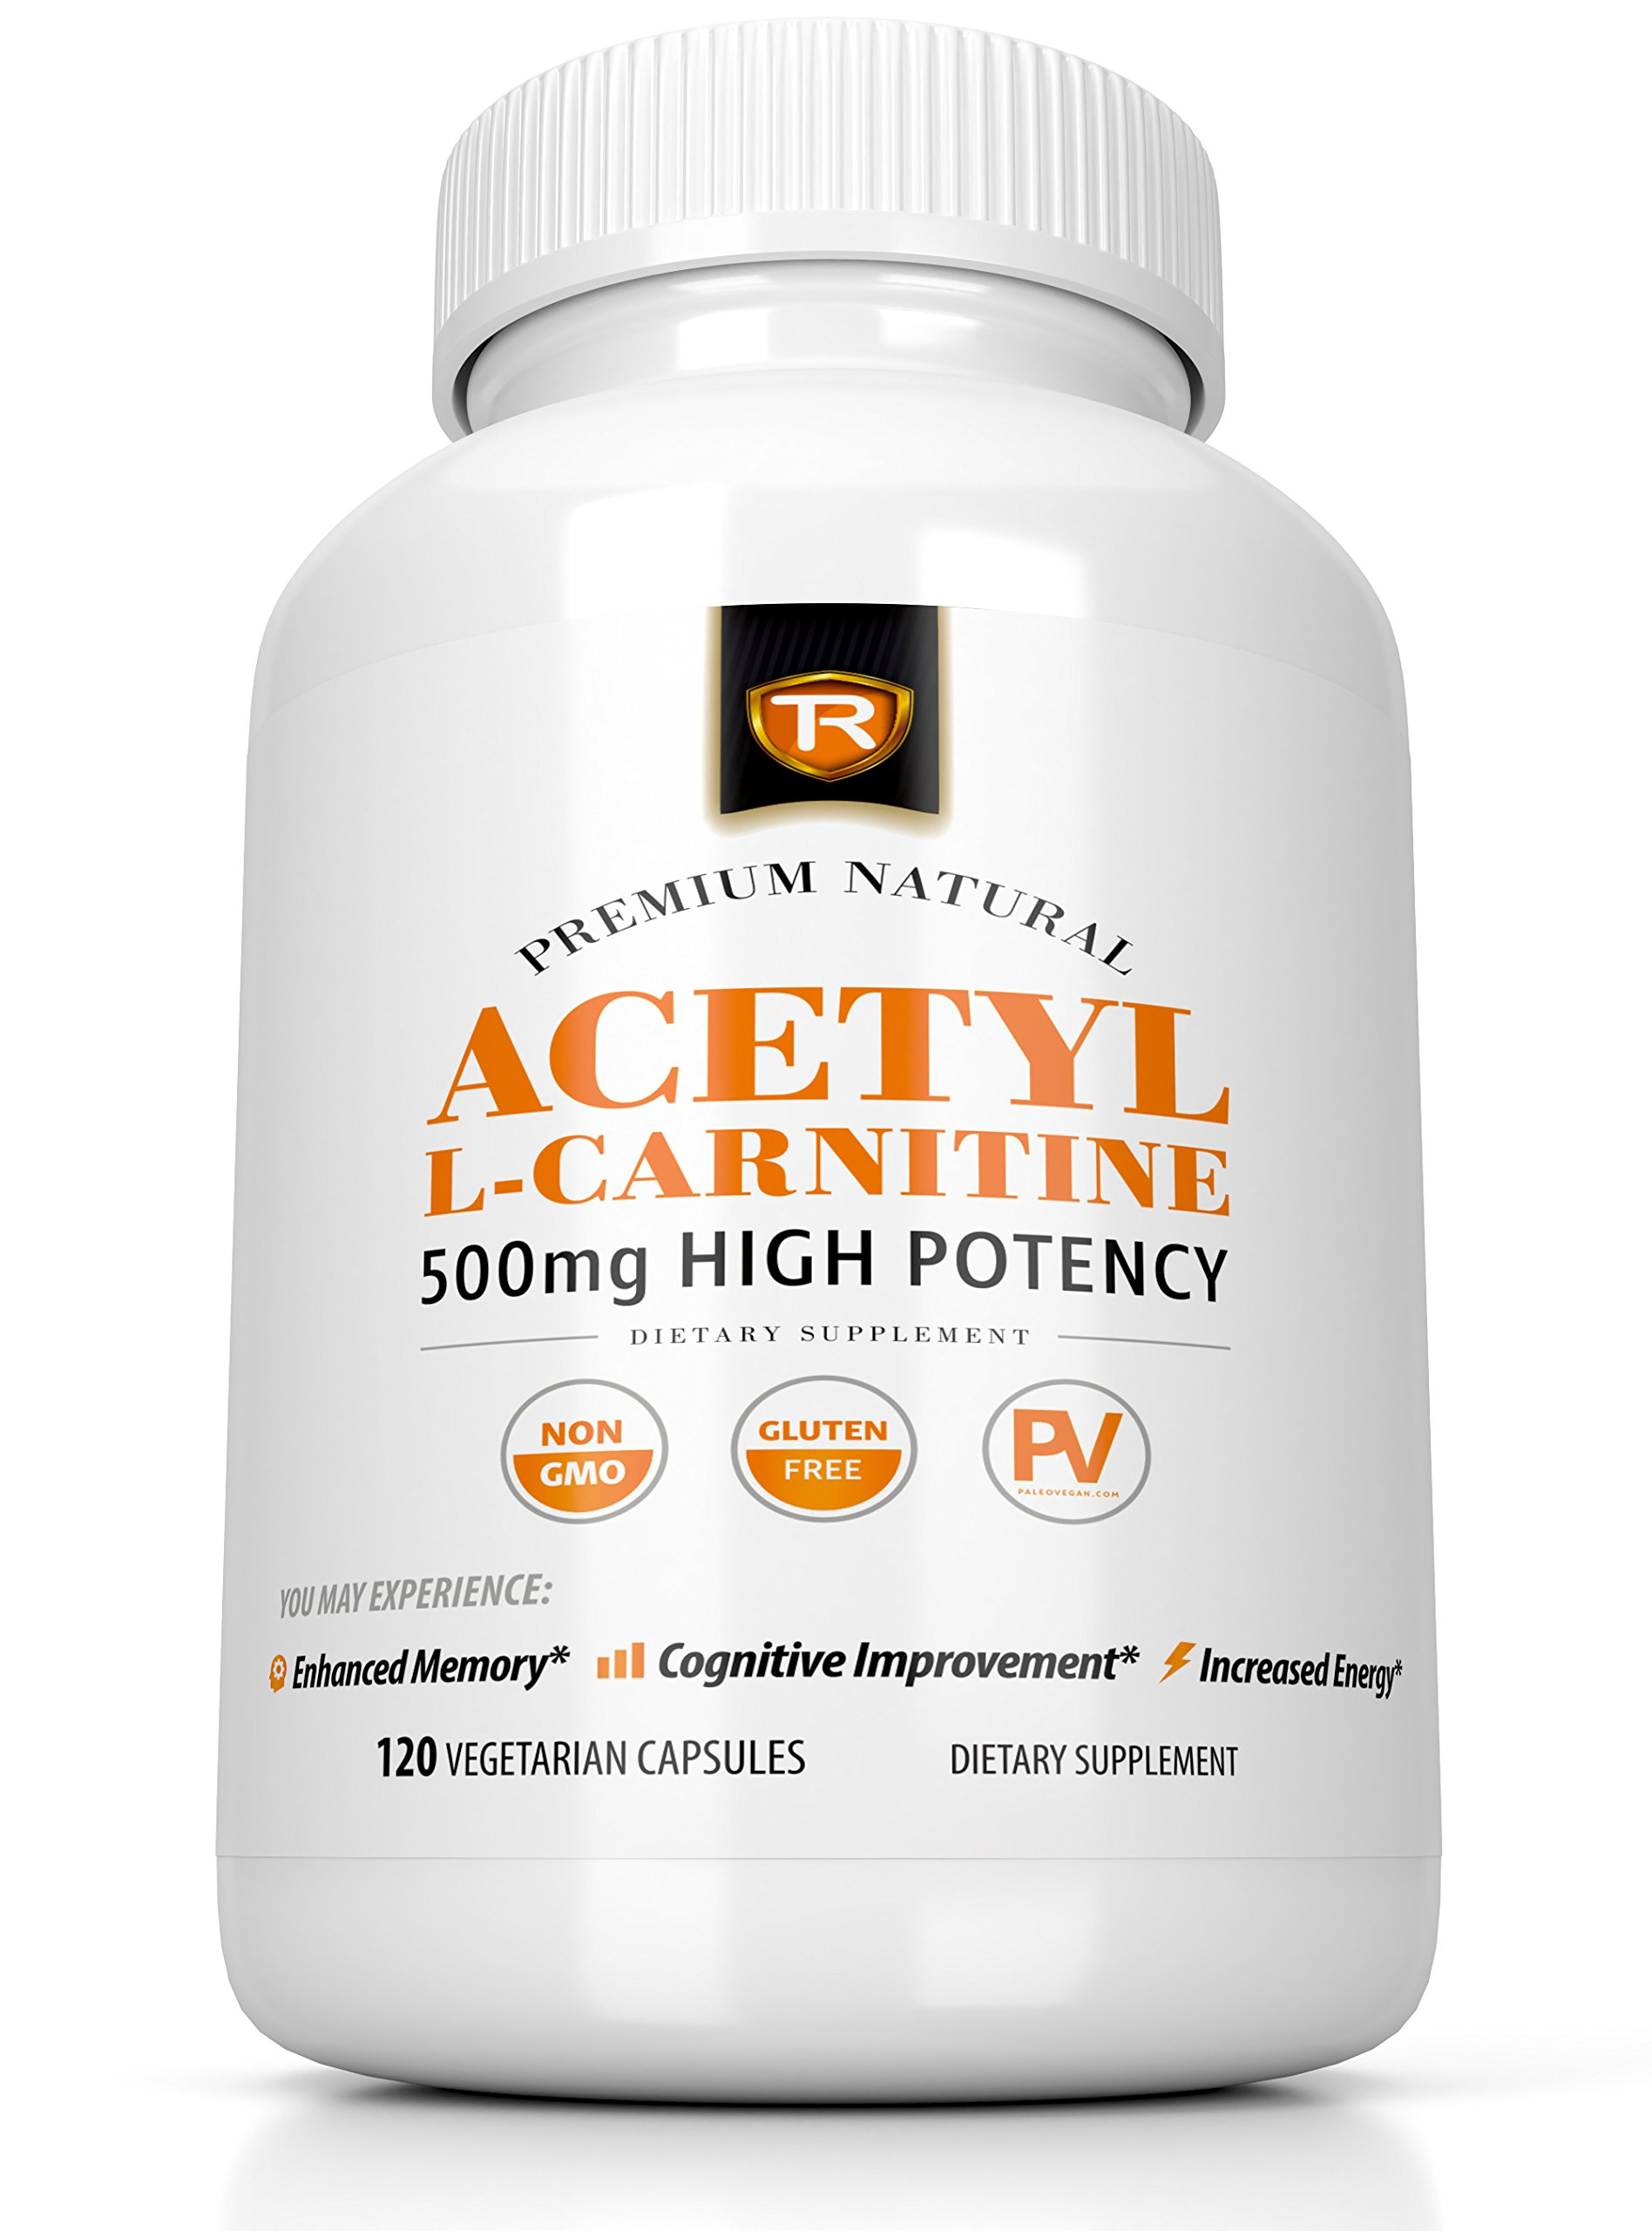 Acetyl L-Carnitine 500mg Extra Strength Supplement   120 Vegetarian Capsules - Alcar by True Recovery